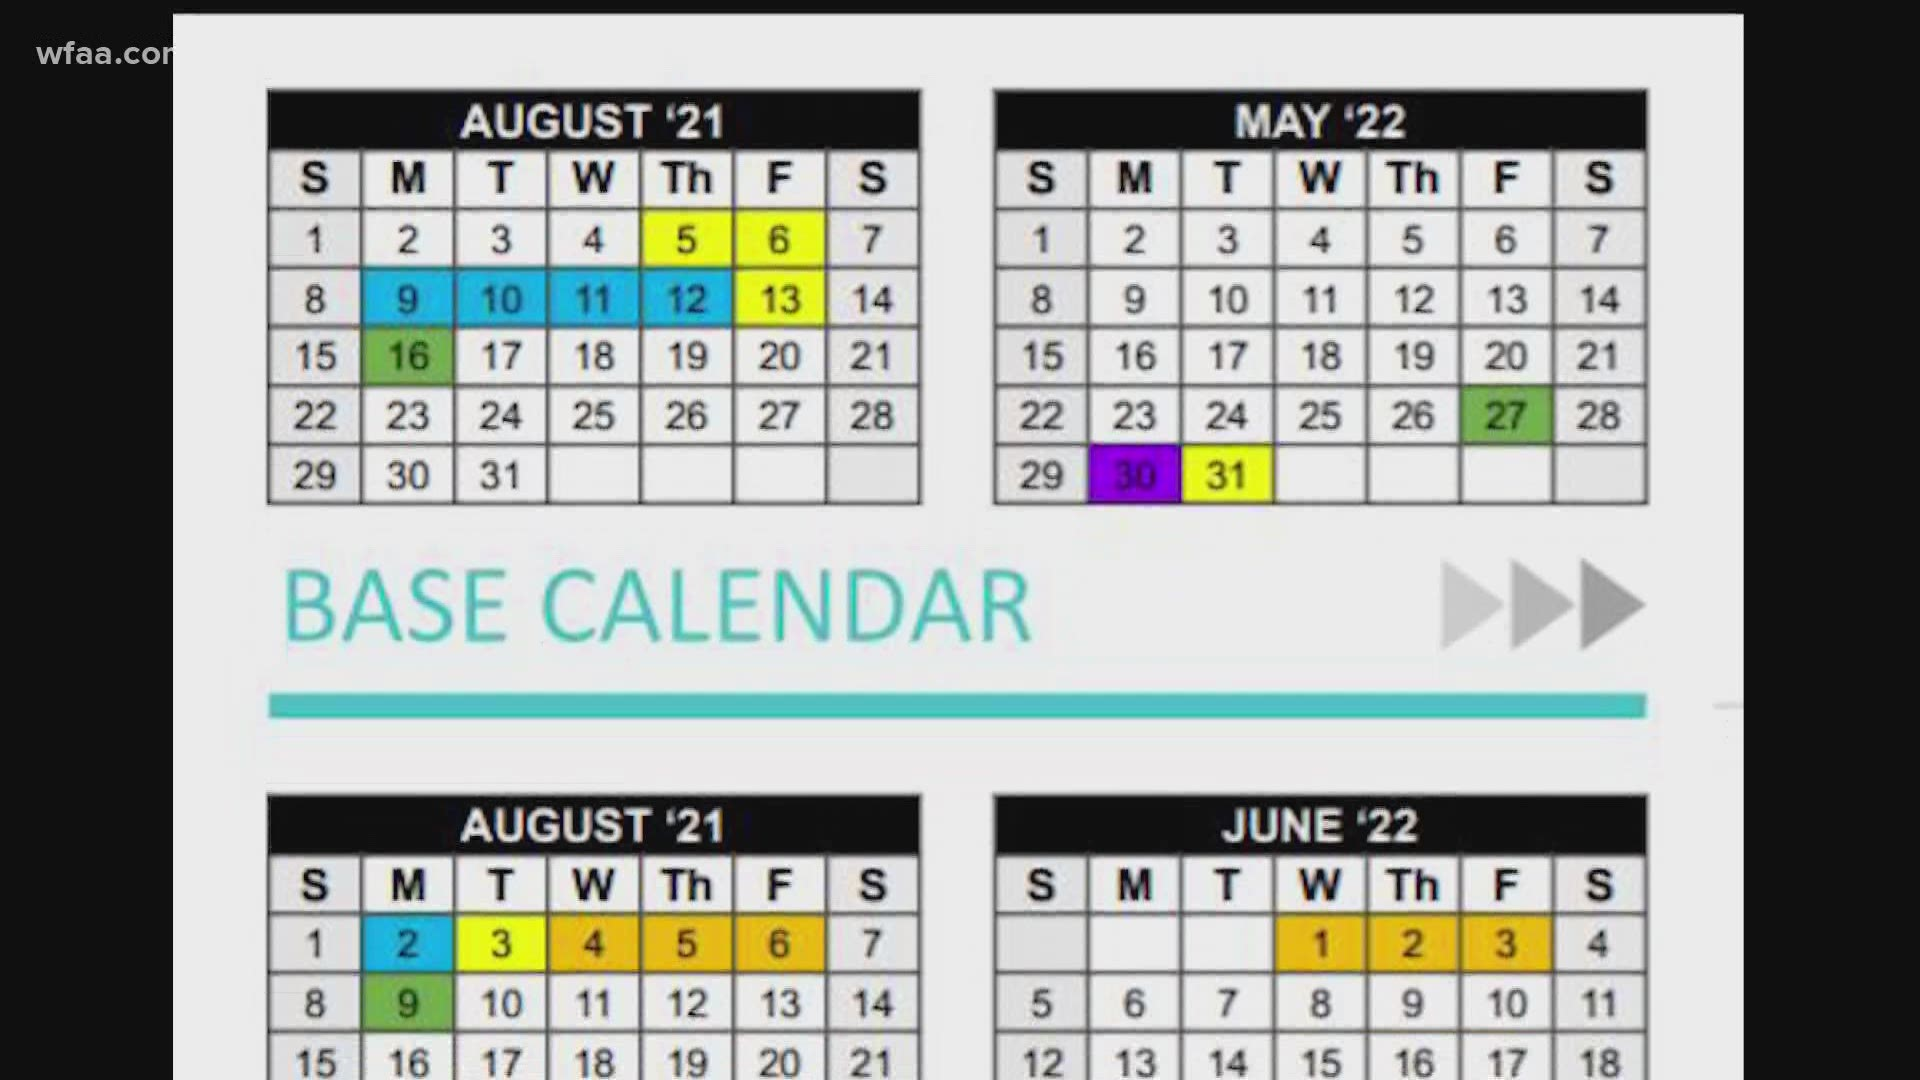 Dallas Isd Calendar 2022.Dallas Isd Looks To Add 23 Instructional Days At Select Campuses To Offset Covid 19 Caused Learning Losses Wfaa Com